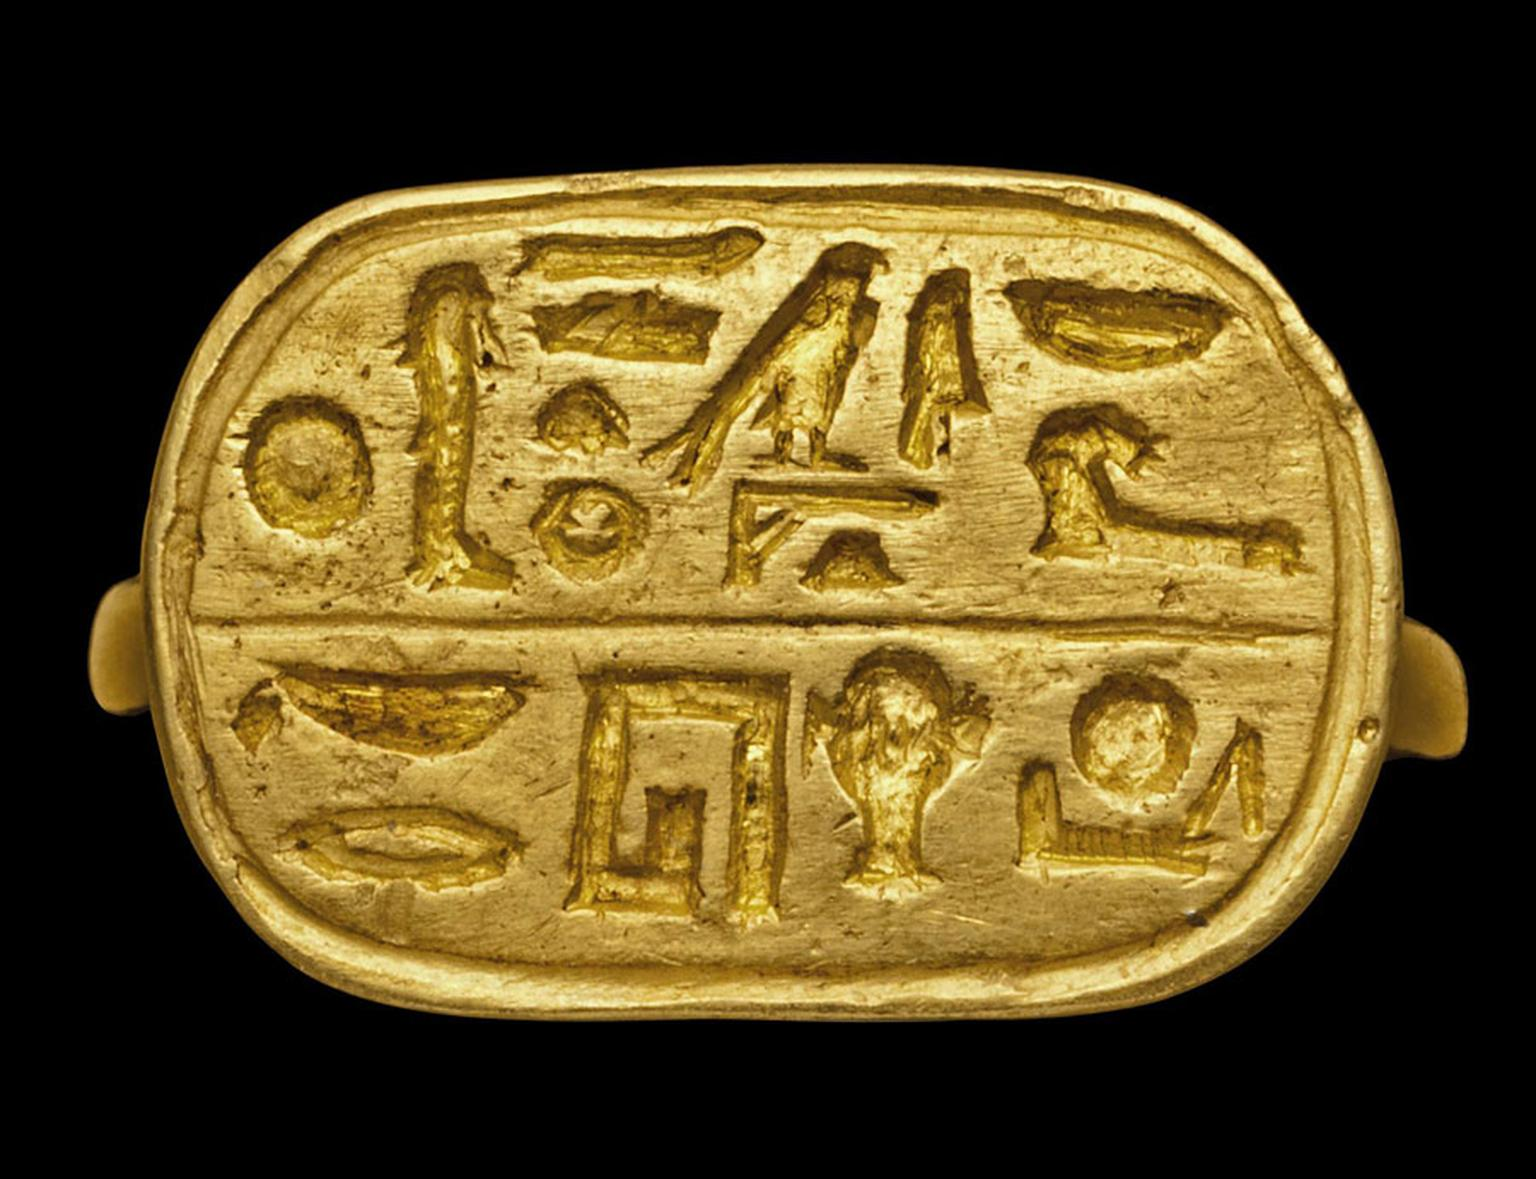 AN EGYPTIAN ELECTRUM-GOLD RING